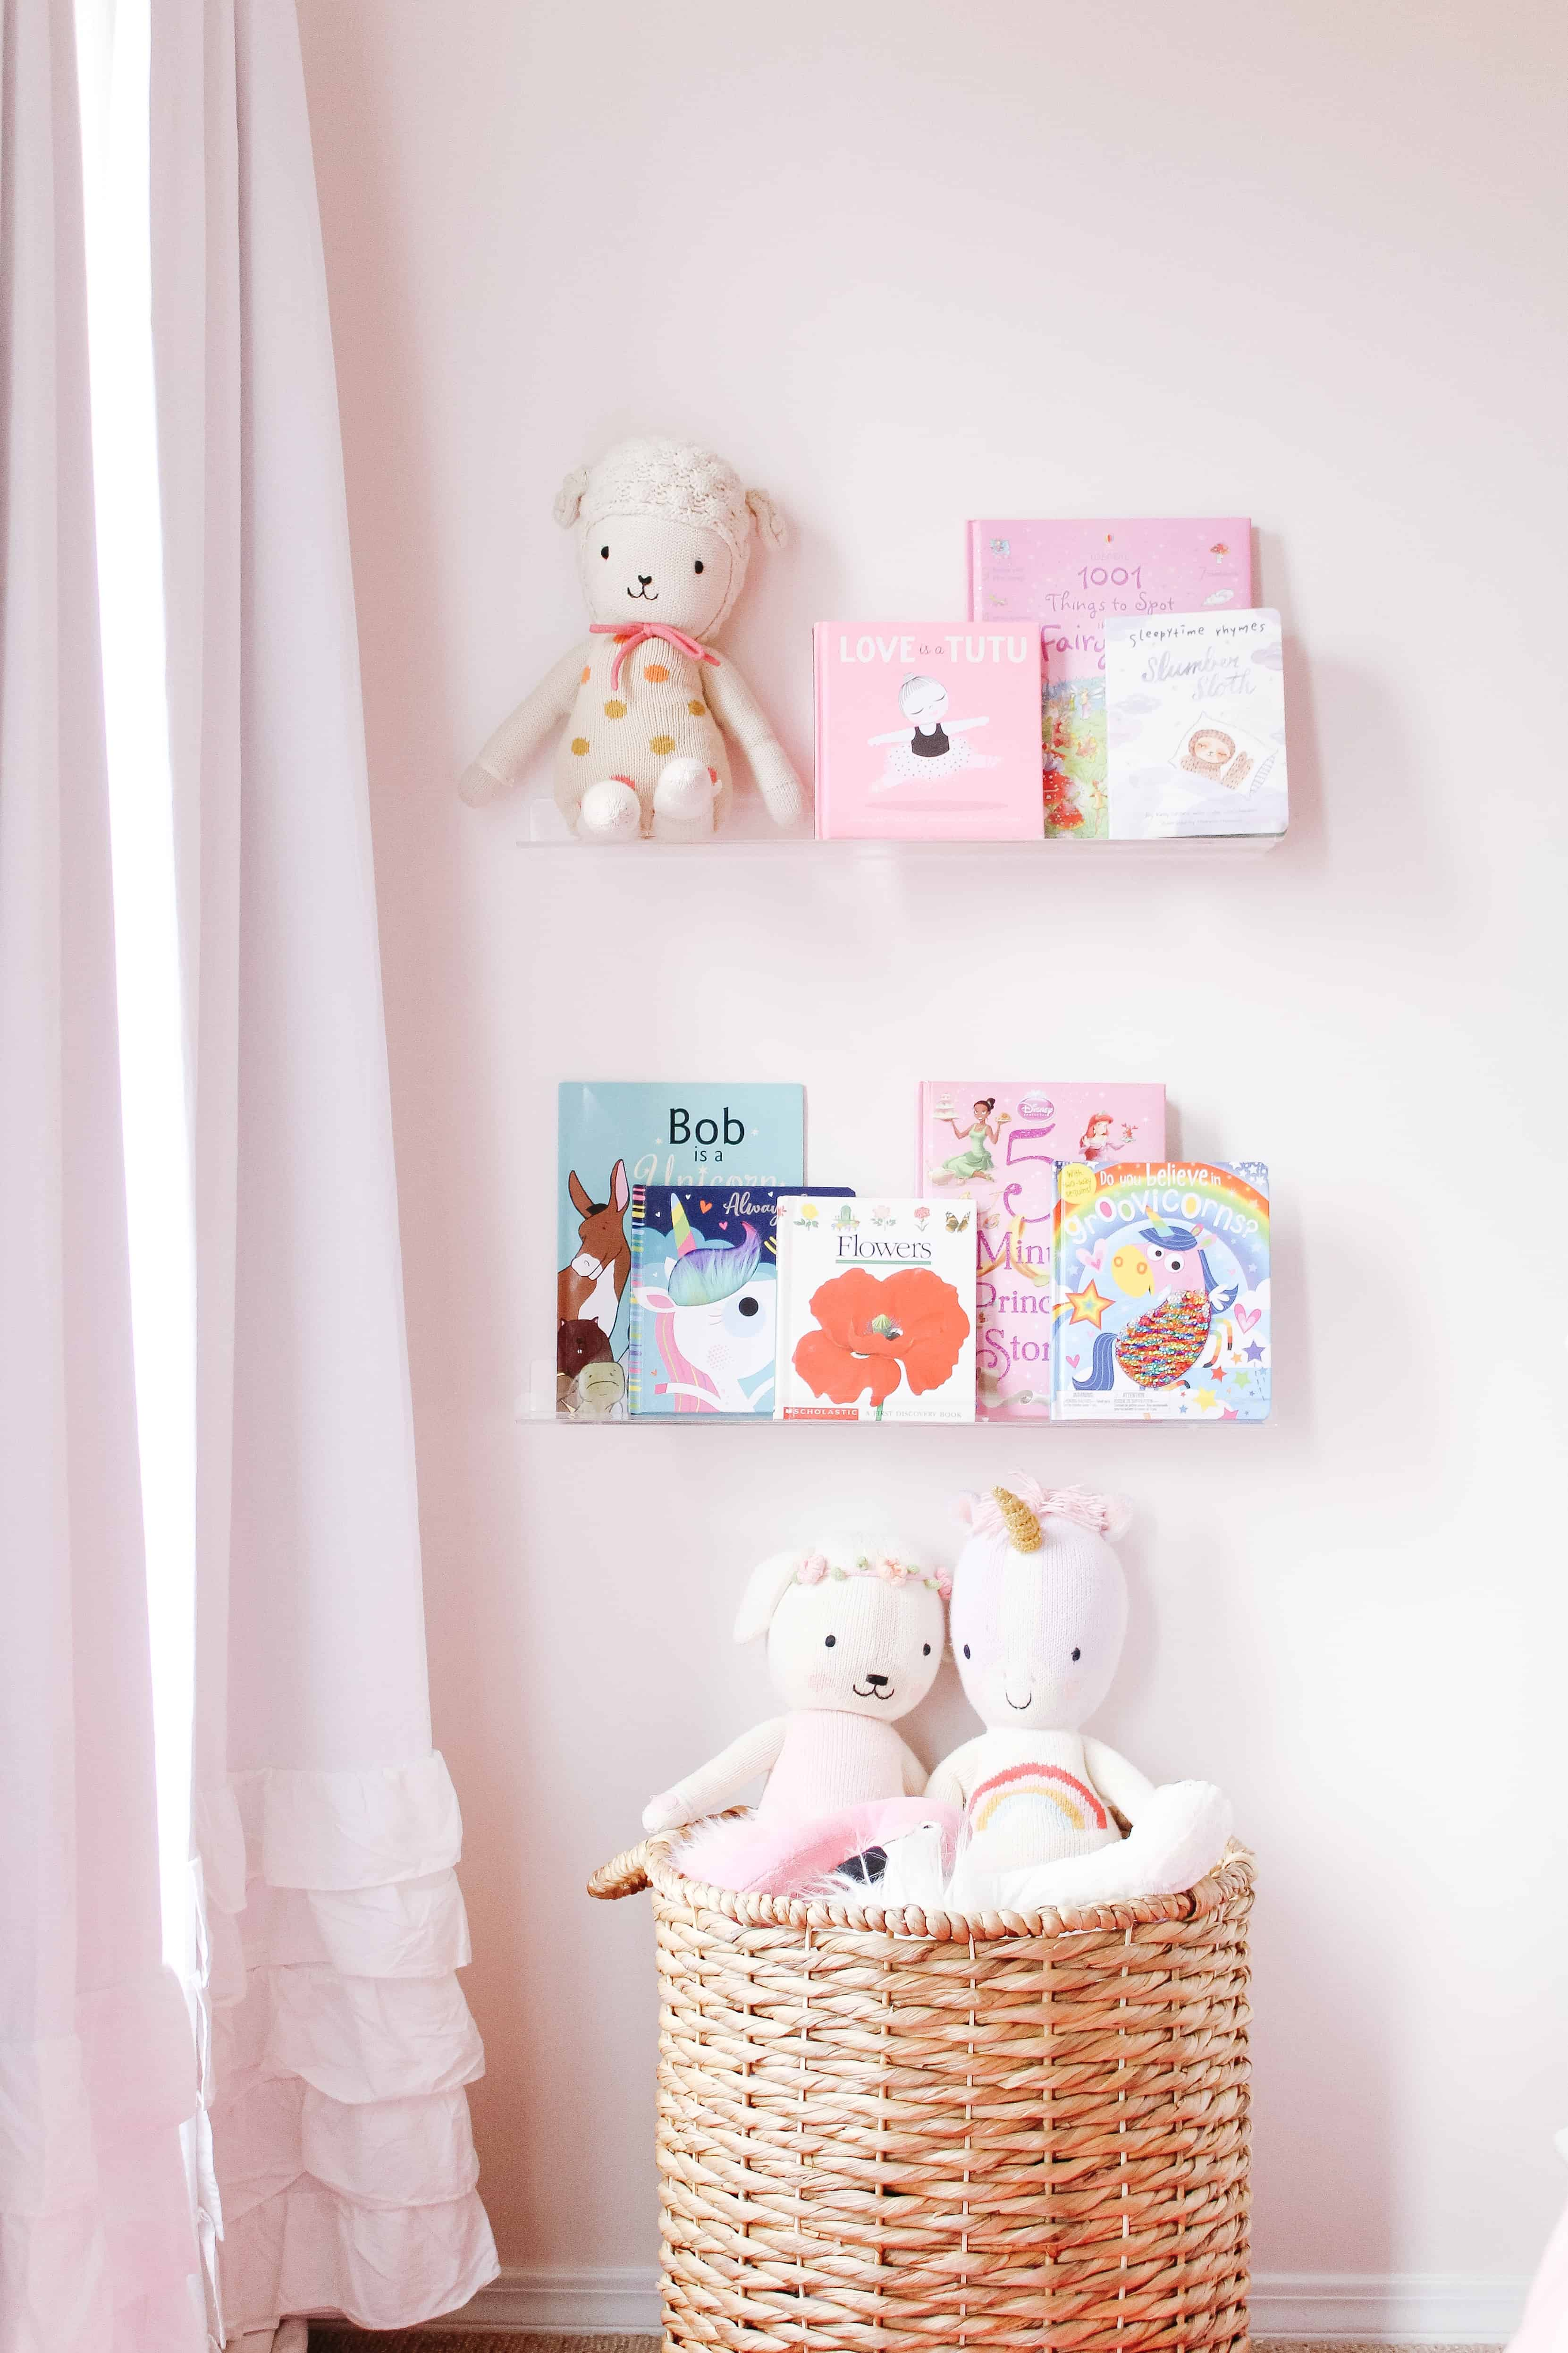 Clear book ledges in toddler room